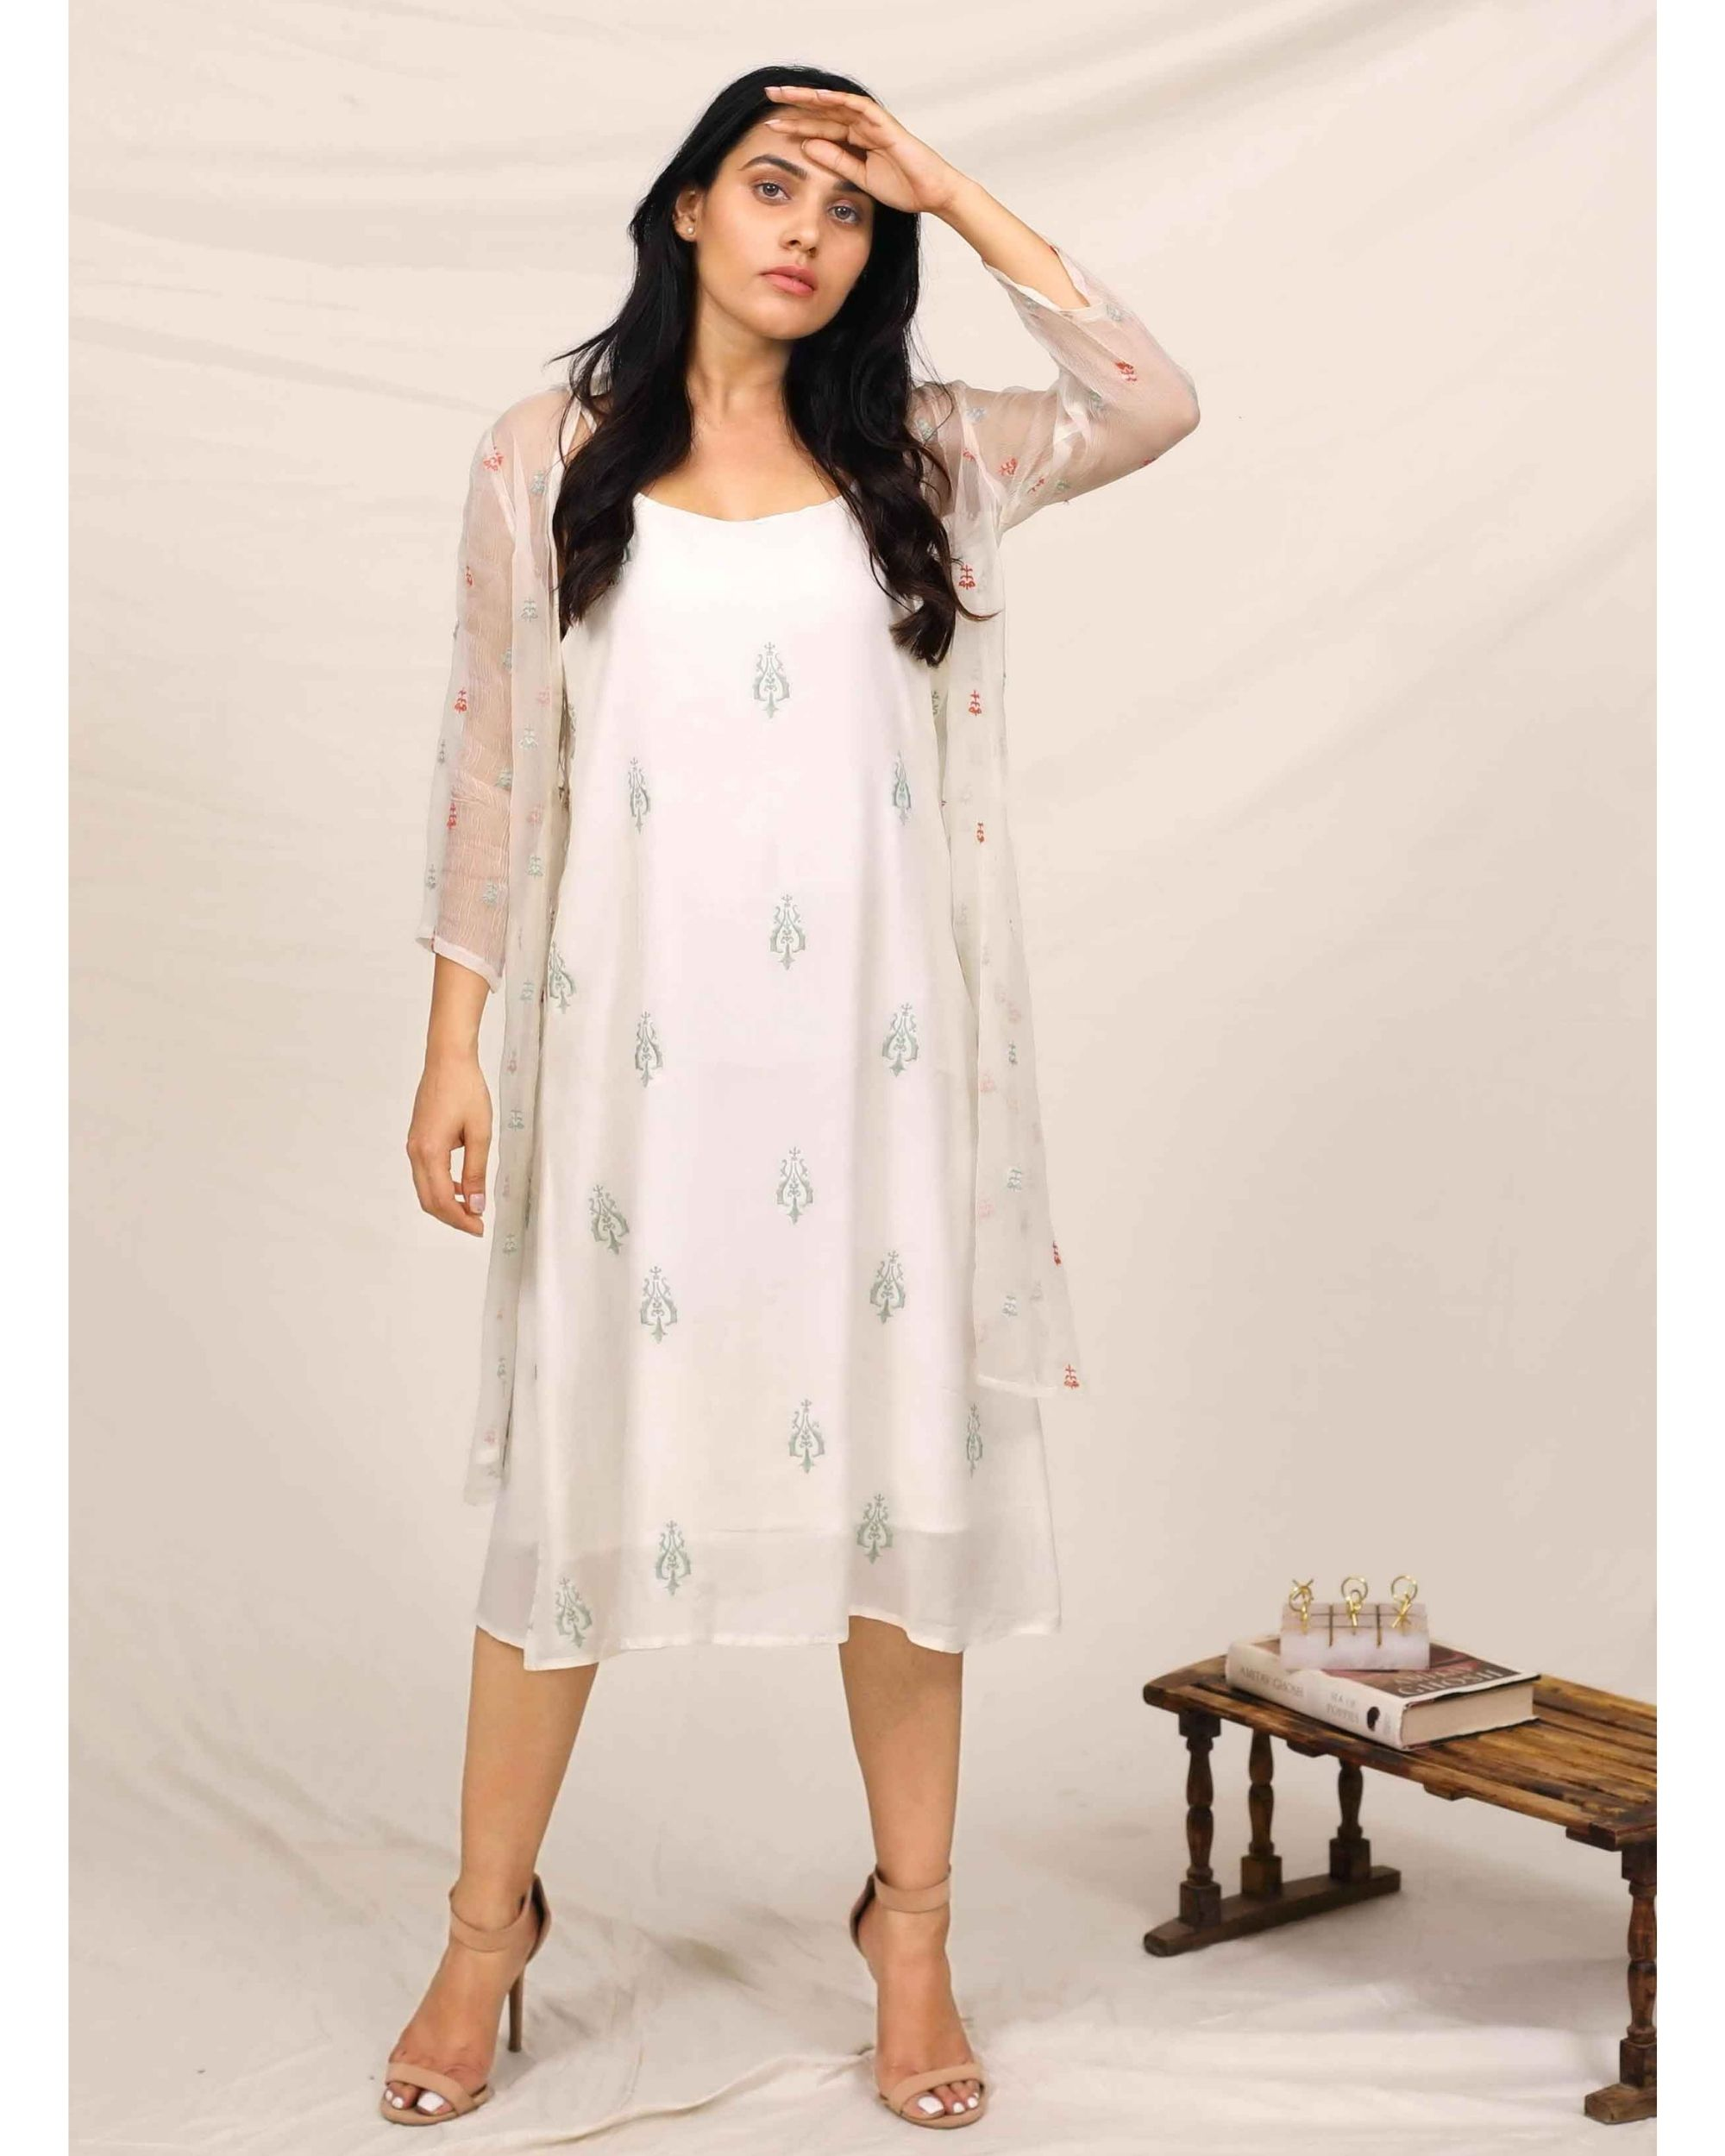 White embroidered dress with chiffon cover up - Set Of Two